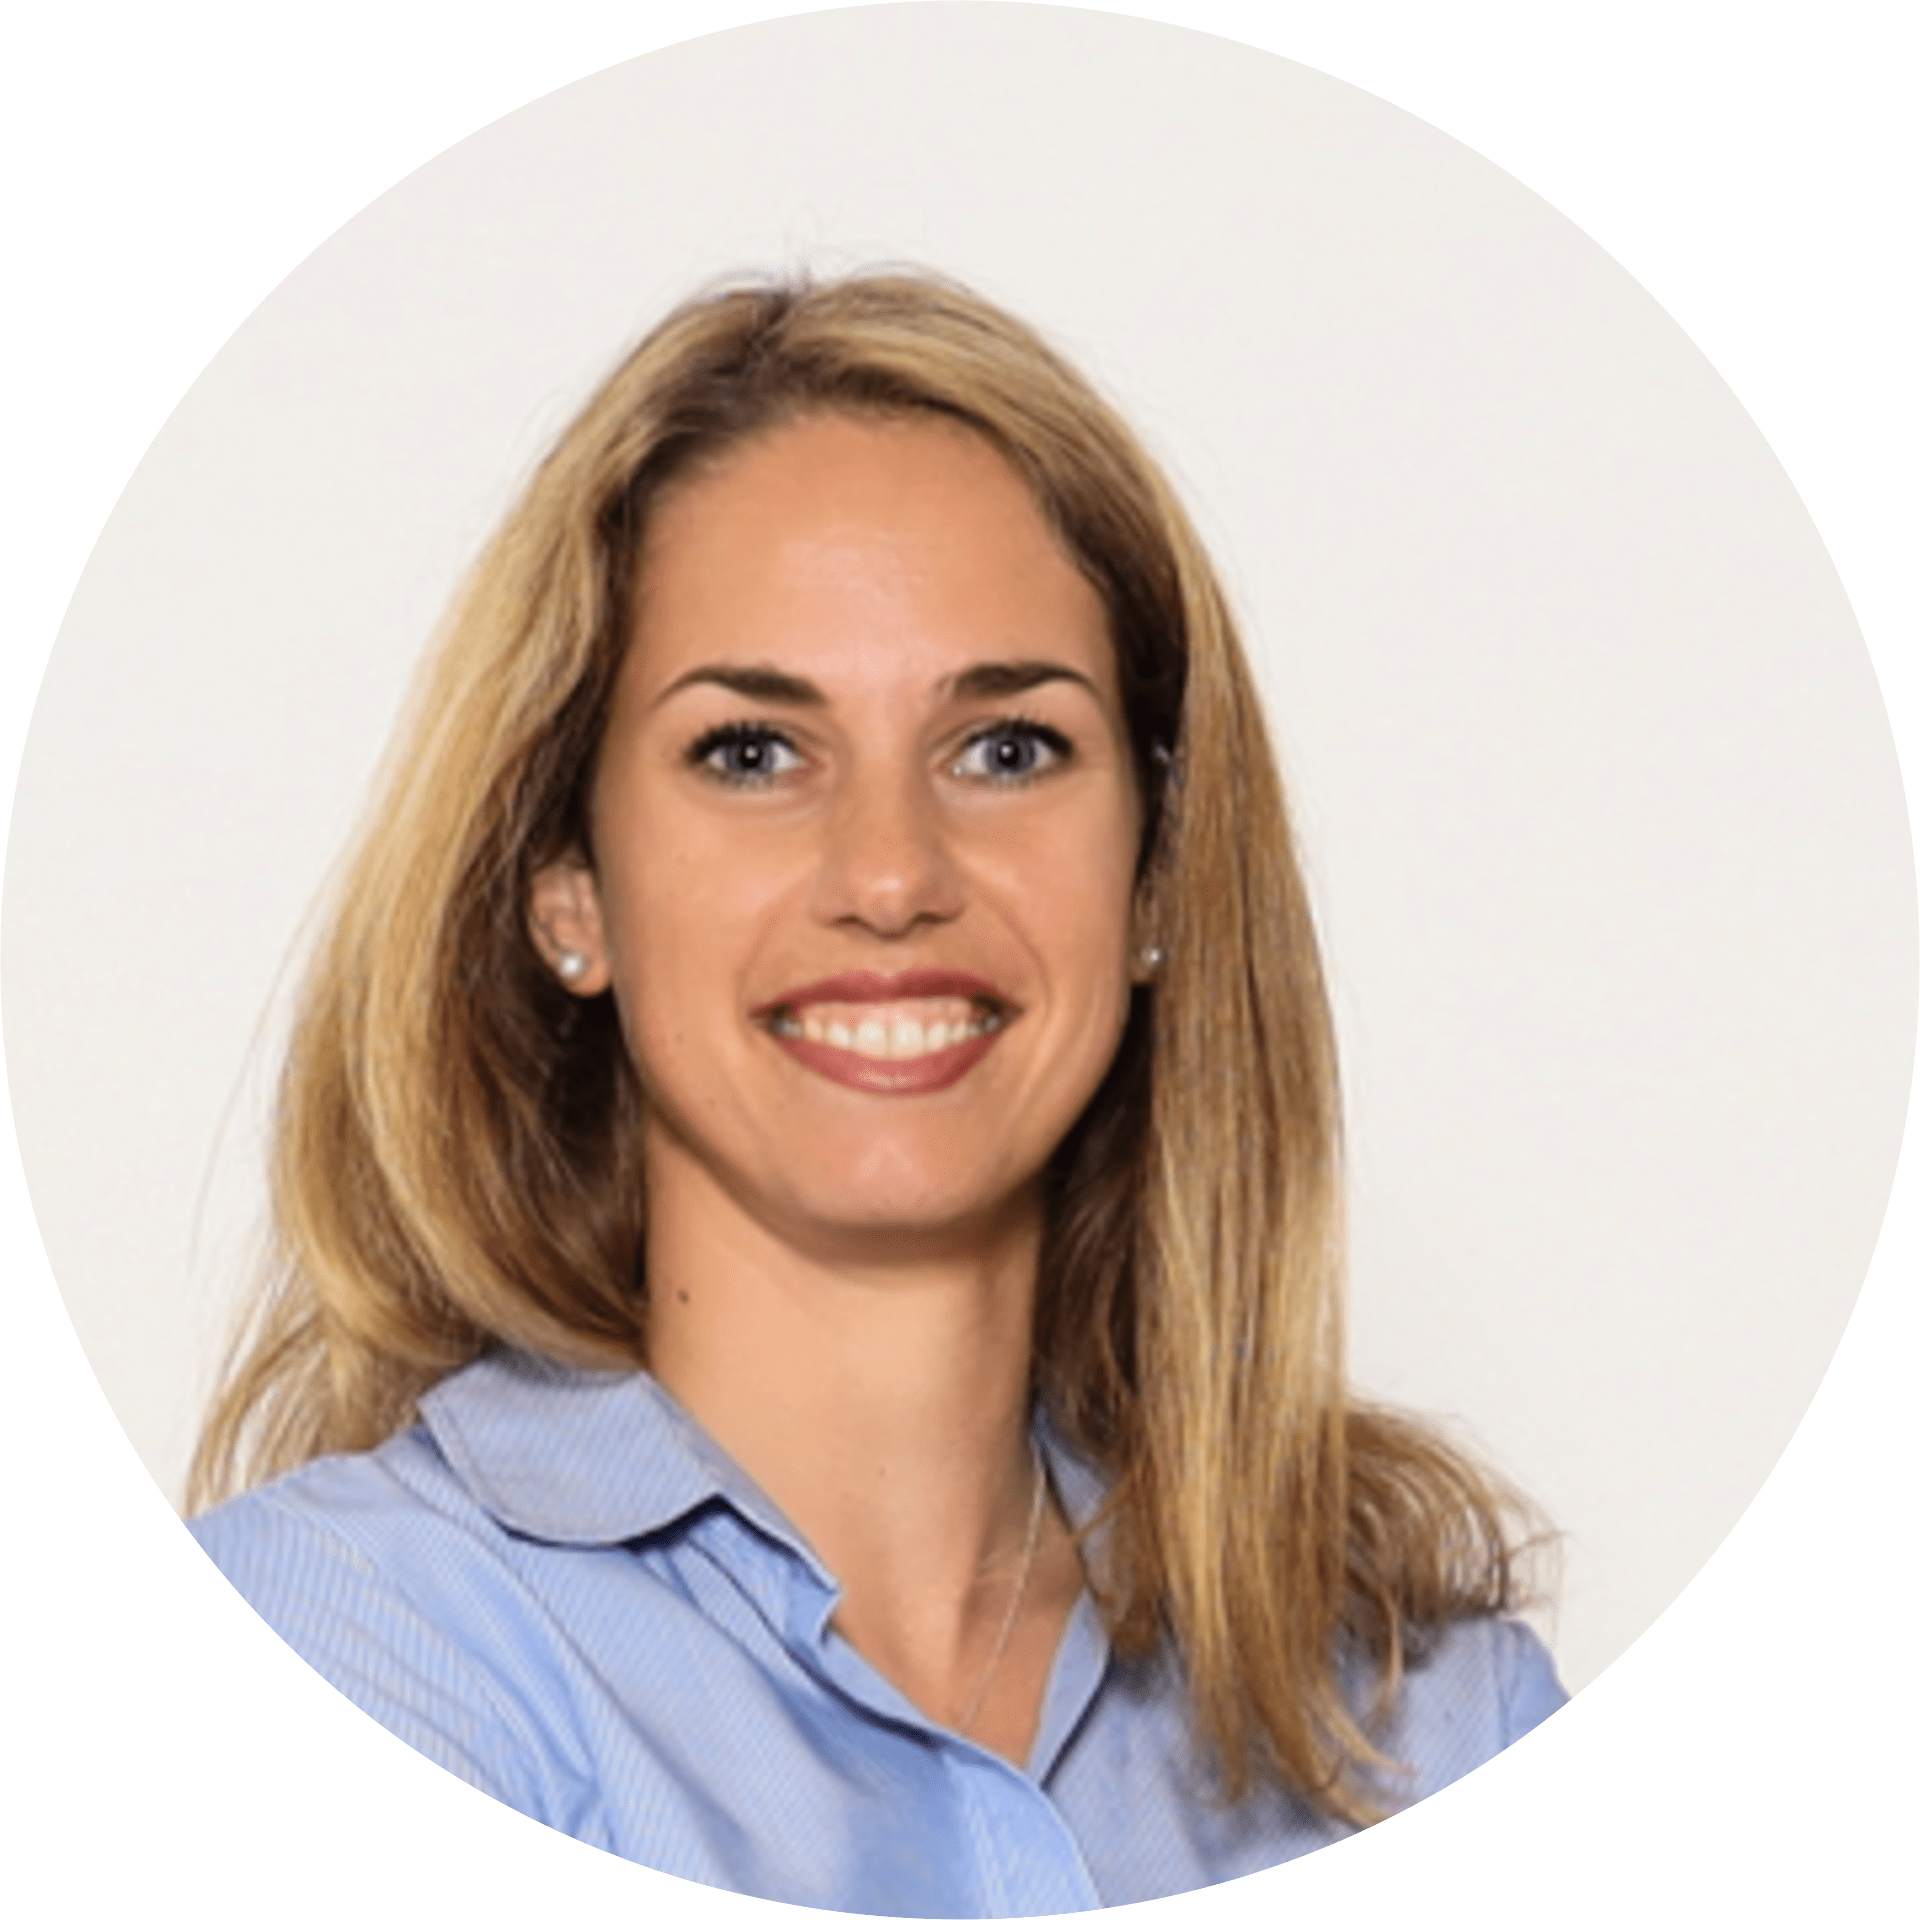 company contact Catharina Bischoff